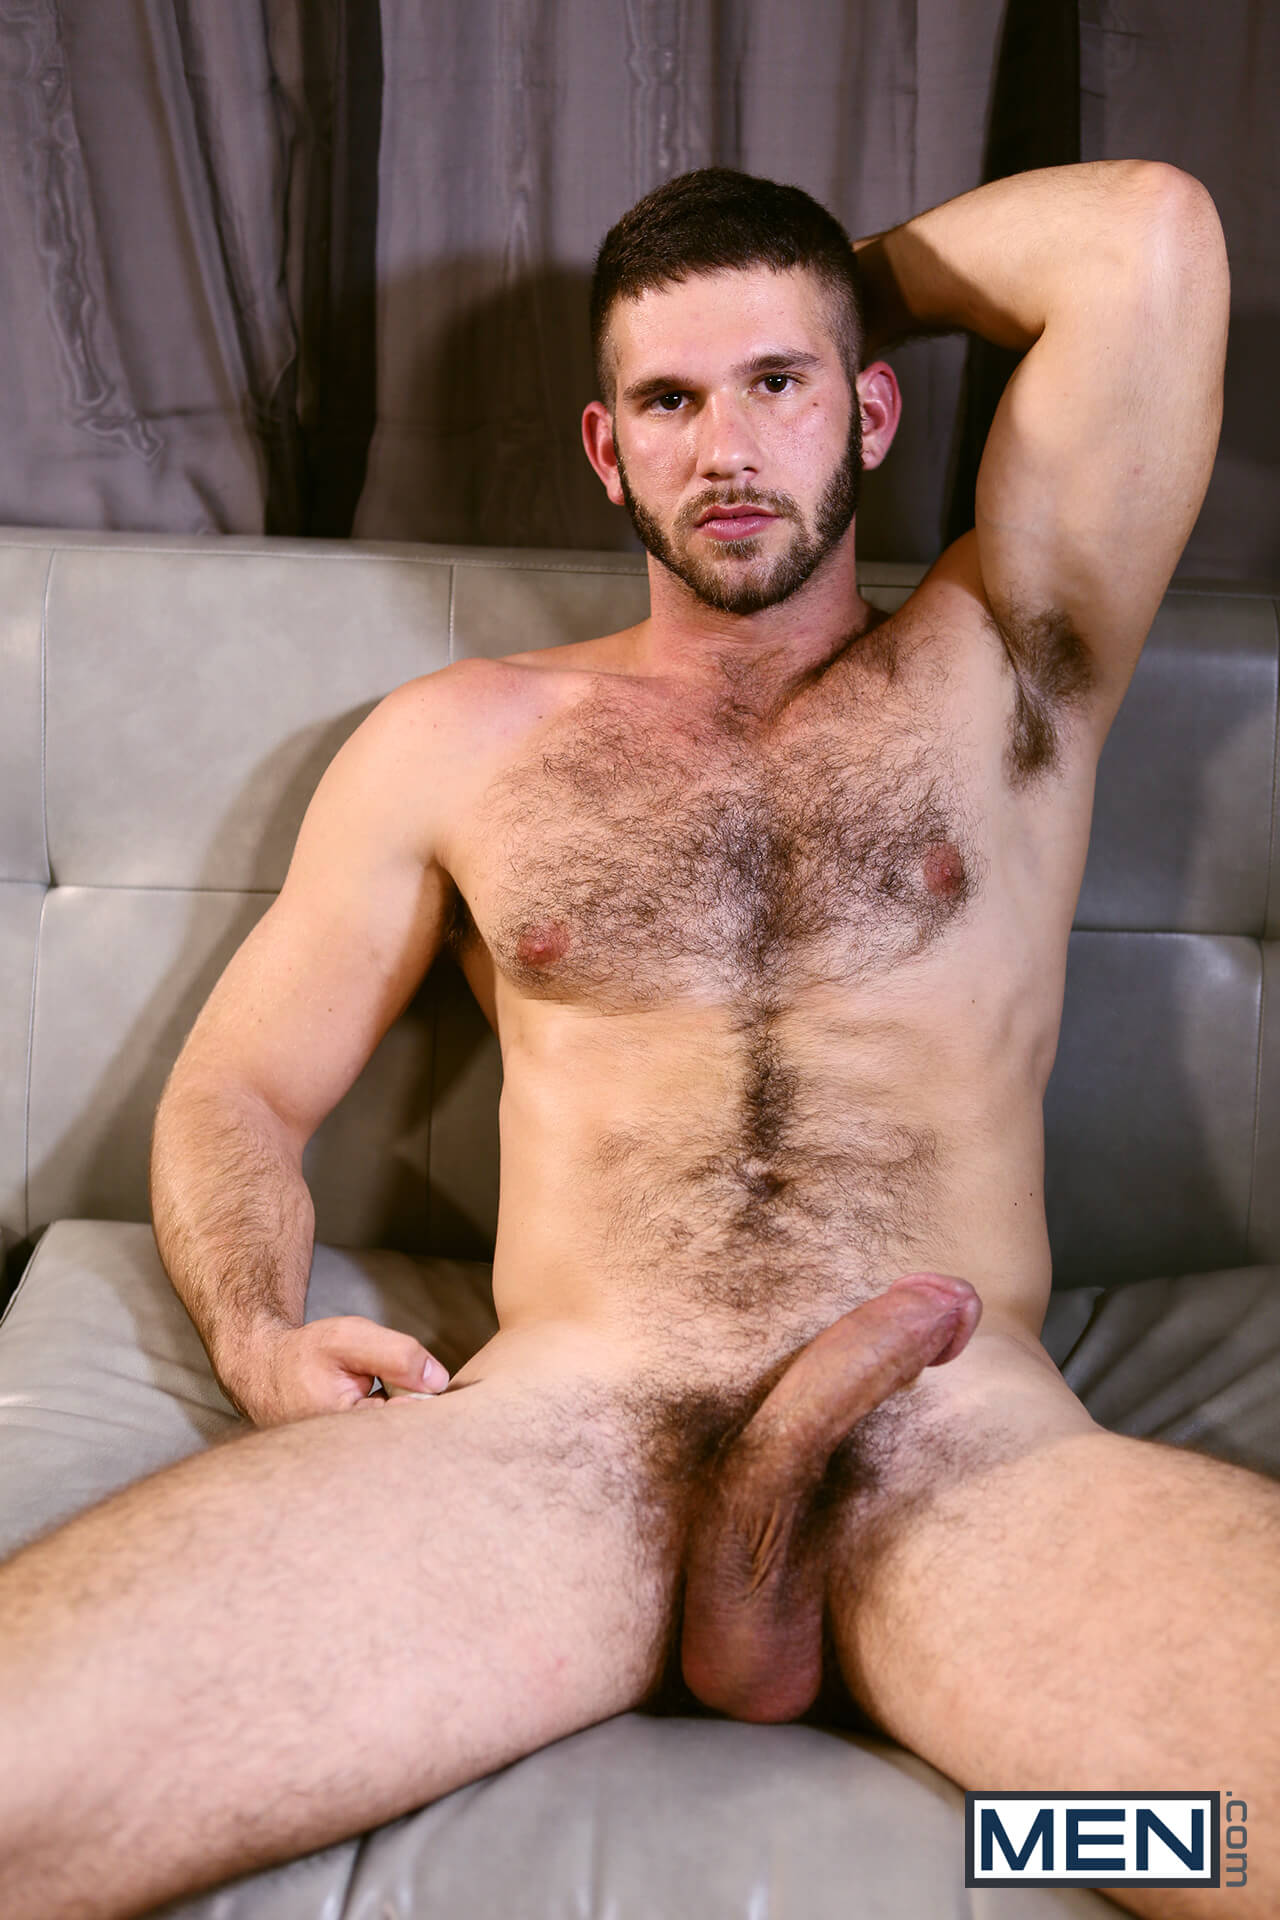 men str8 to gay home wrecker part 3 chris harder jimmy fanz gay porn blog image 6